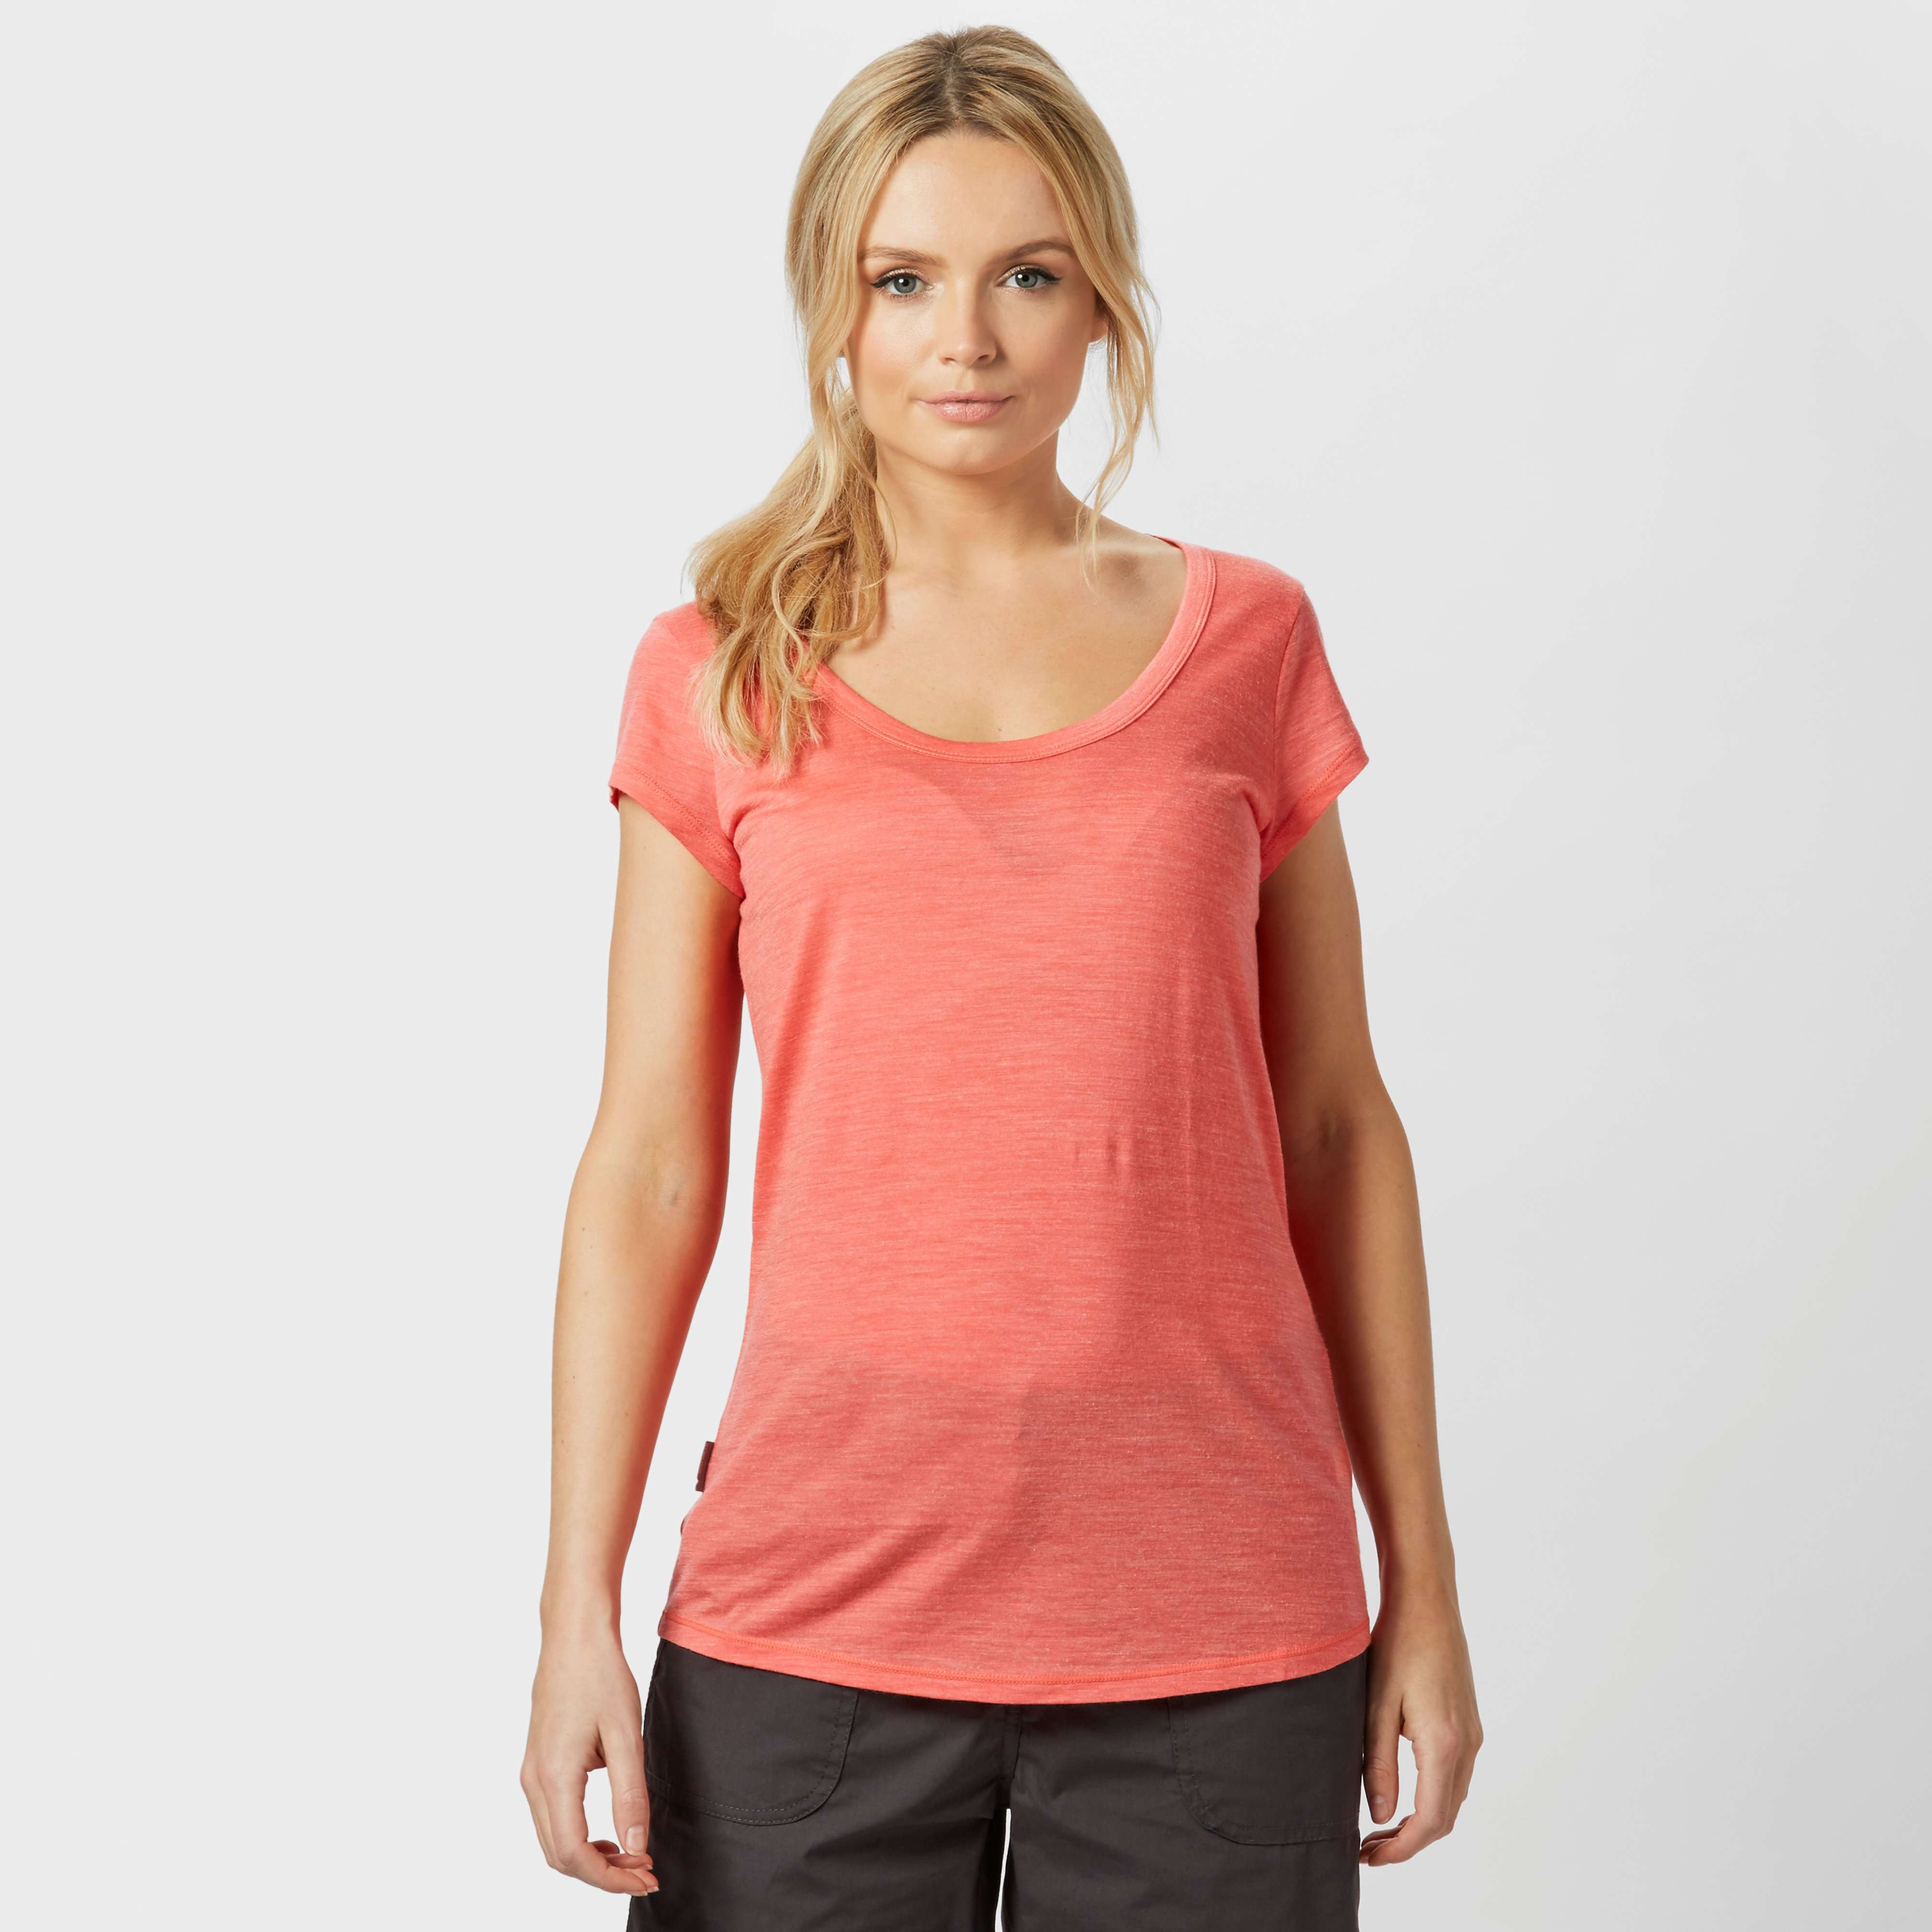 ICEBREAKER Women's Cool-Lite Spheria Short Sleeve T-Shirt